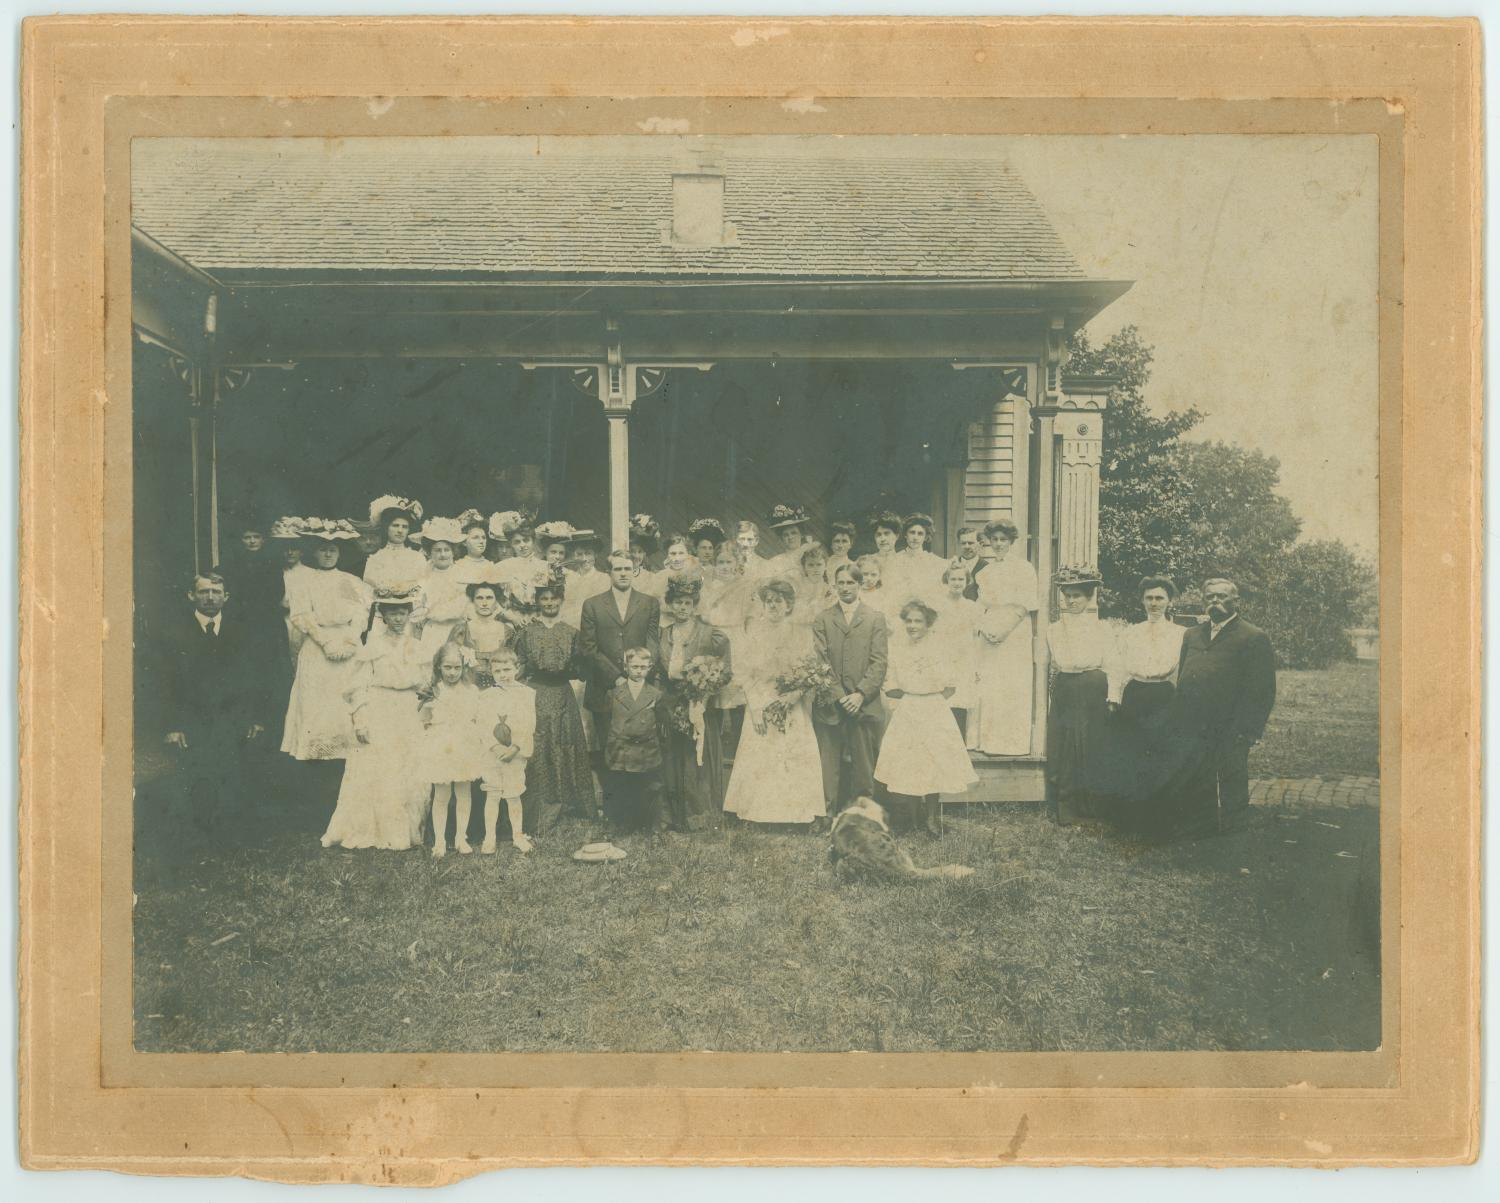 [Howard and Carter Wedding Party], Photograph of the wedding party of Kathleen Howard and Joseph D. Carter of Longview, Texas. There are several unidentified family members and guests in the photograph; all known members are listed on the back of the photograph. From left to right, top to bottom, the members pictured are: Top row: Luke Cole, Mrs. Joe Battle, Birdie Fisher, Bo Brown, Garland Smith, Tracy Flanagan, Flo Bramlette, Sadie Spradling, Anita Howard, Mr. and Mrs. J. D. Roach. Second row: Anna Coleman, Mrs. W. F. Wood, Camie F. Gray, Joseph D. Carter, Kathleen Howard, Laura Howard, Mr. McGinnis, Gladys Howard, Mr. and Mrs. Jackson C. Howard (parents of the bride). Bottom row: Agnes Brown, W. C. Hixson, Shep (family dog).,